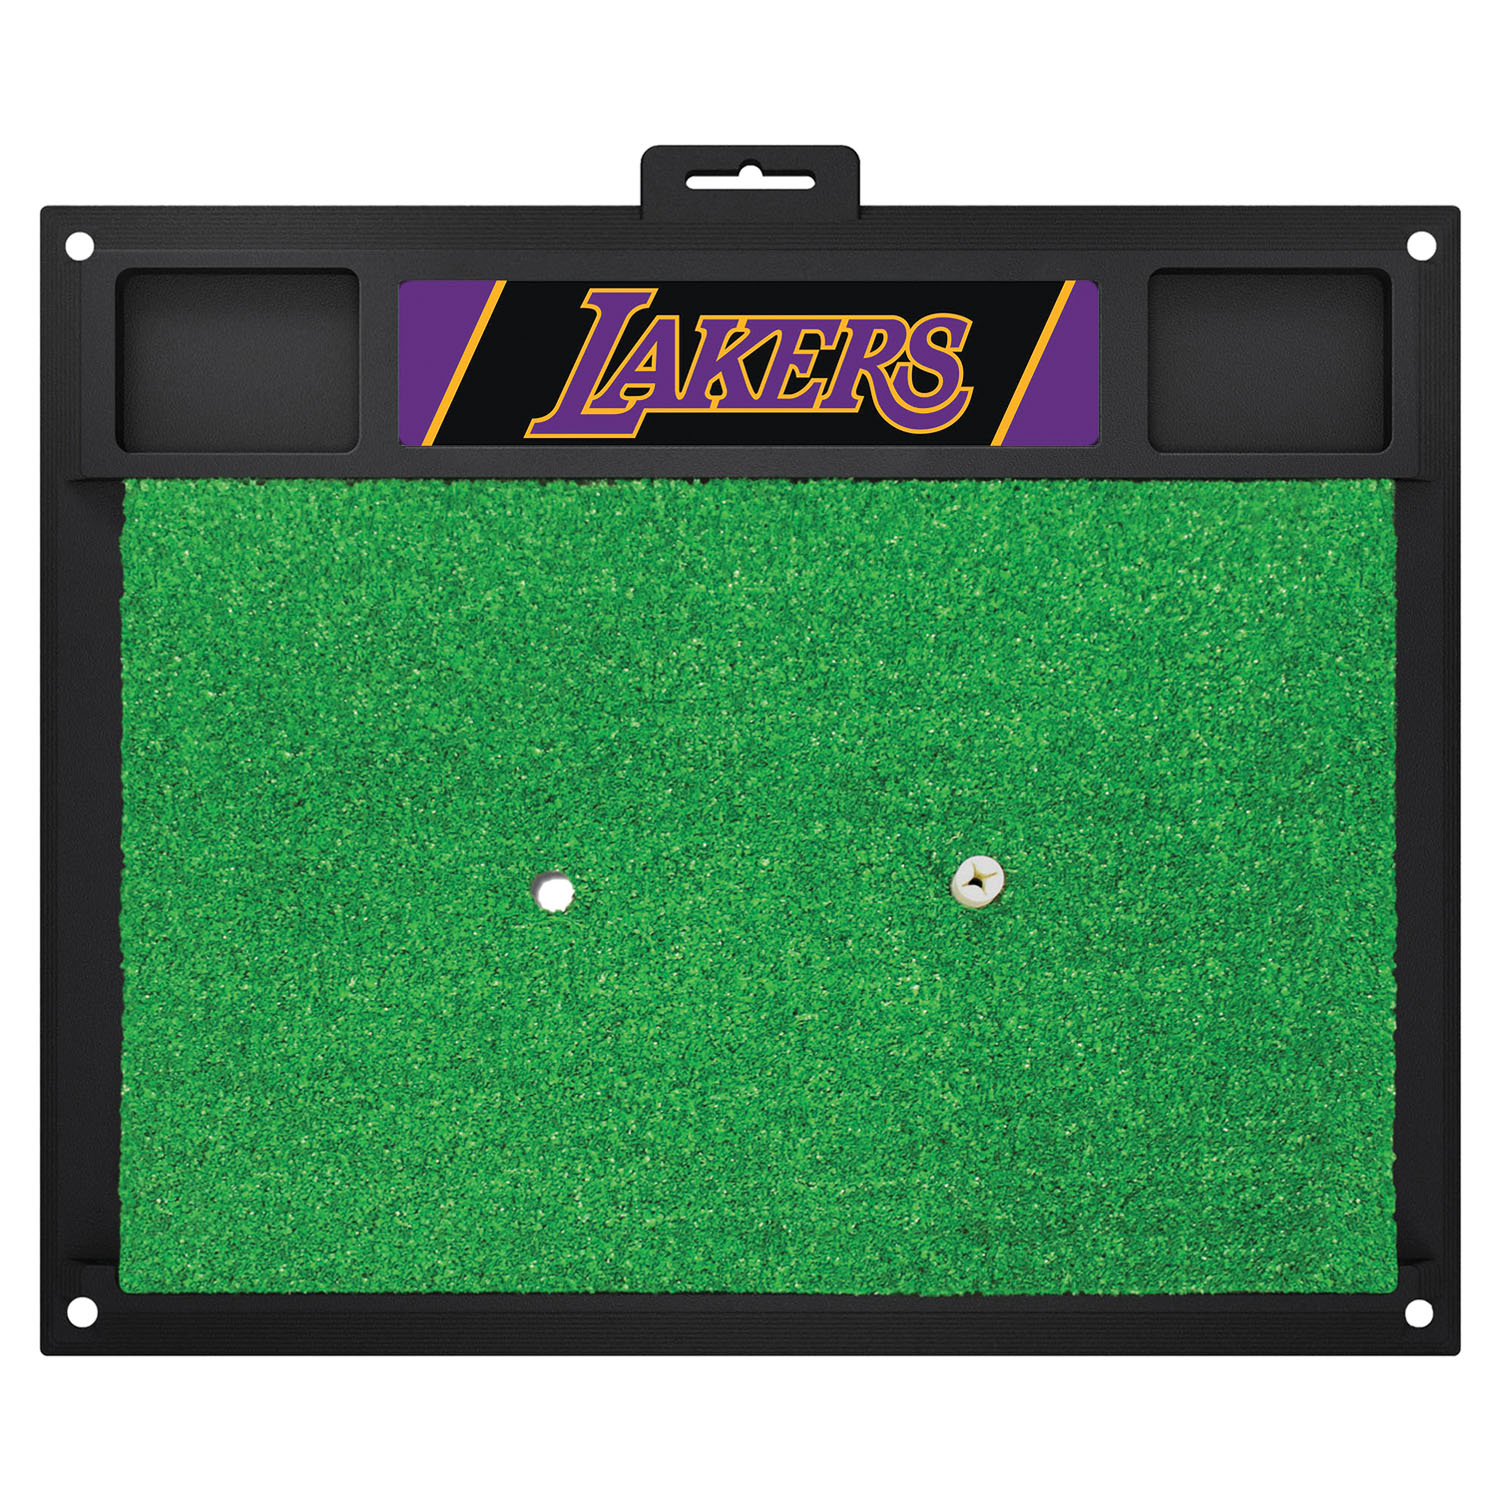 Fanmats Los Angeles Lakers Sports Team Logo Backyard Golf Hitting Practice Mat